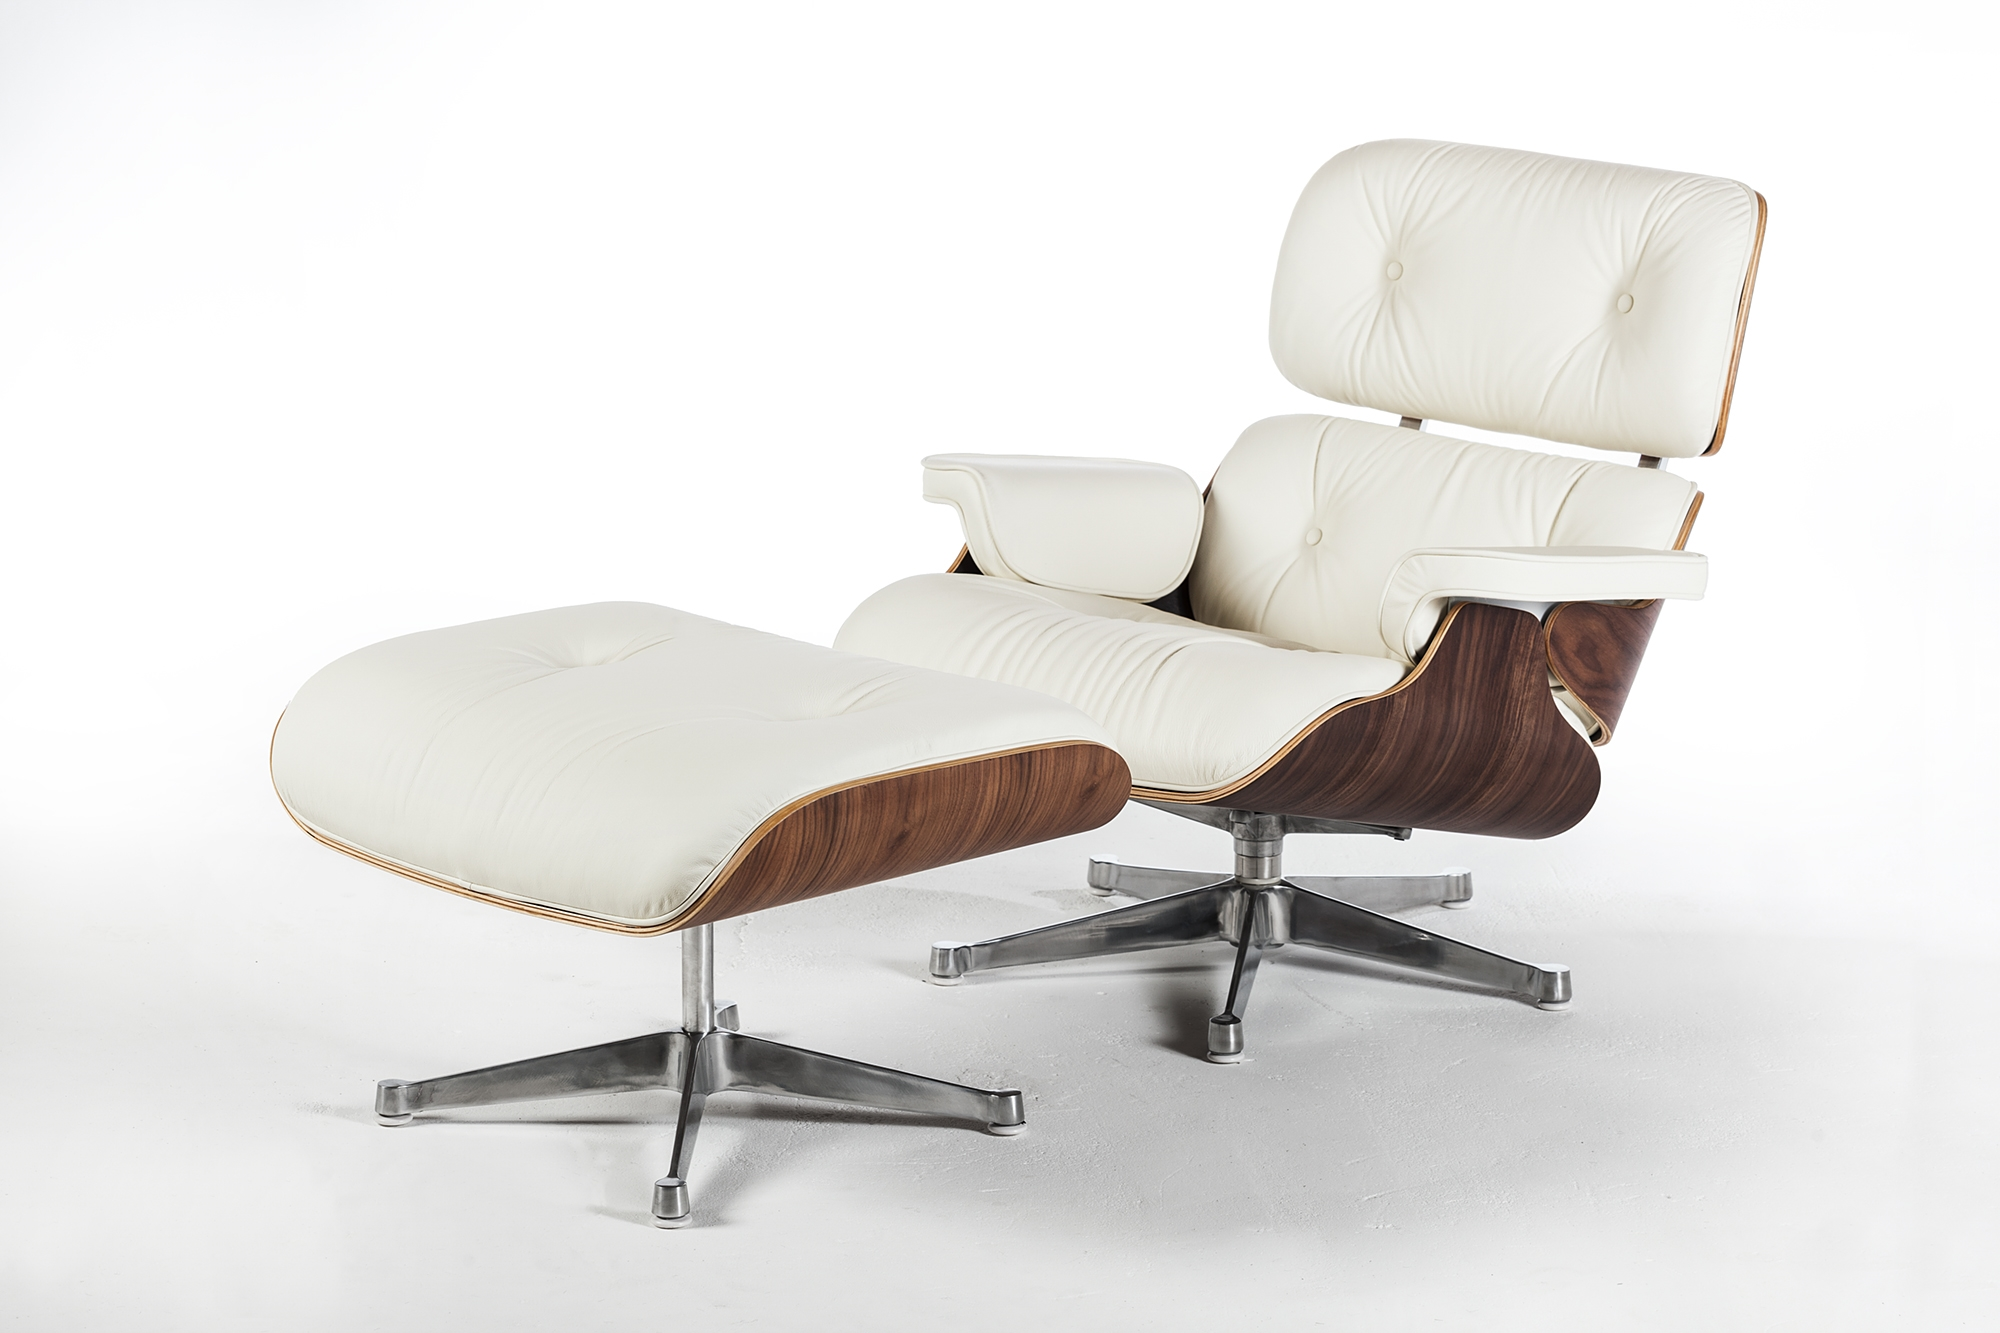 Phenomenal Mid Century Style Lounge Chair And Ottoman White Leather Machost Co Dining Chair Design Ideas Machostcouk